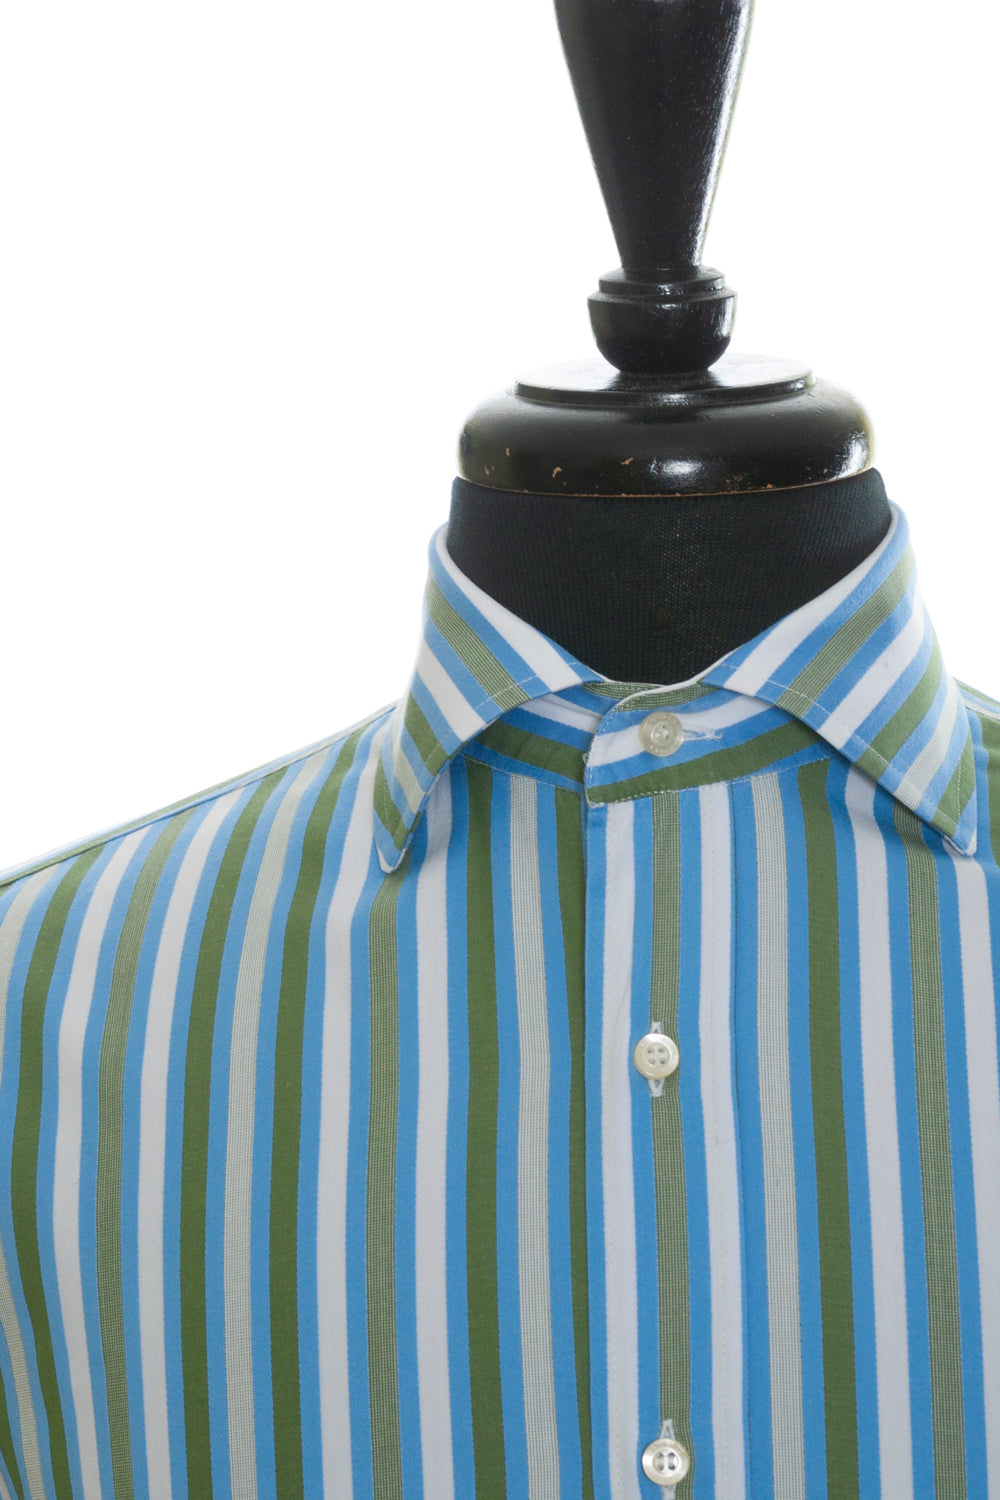 Etro Milano Green and Blue Striped French Cuff Shirt for Luxmrkt.com Menswear Consignment Edmonton